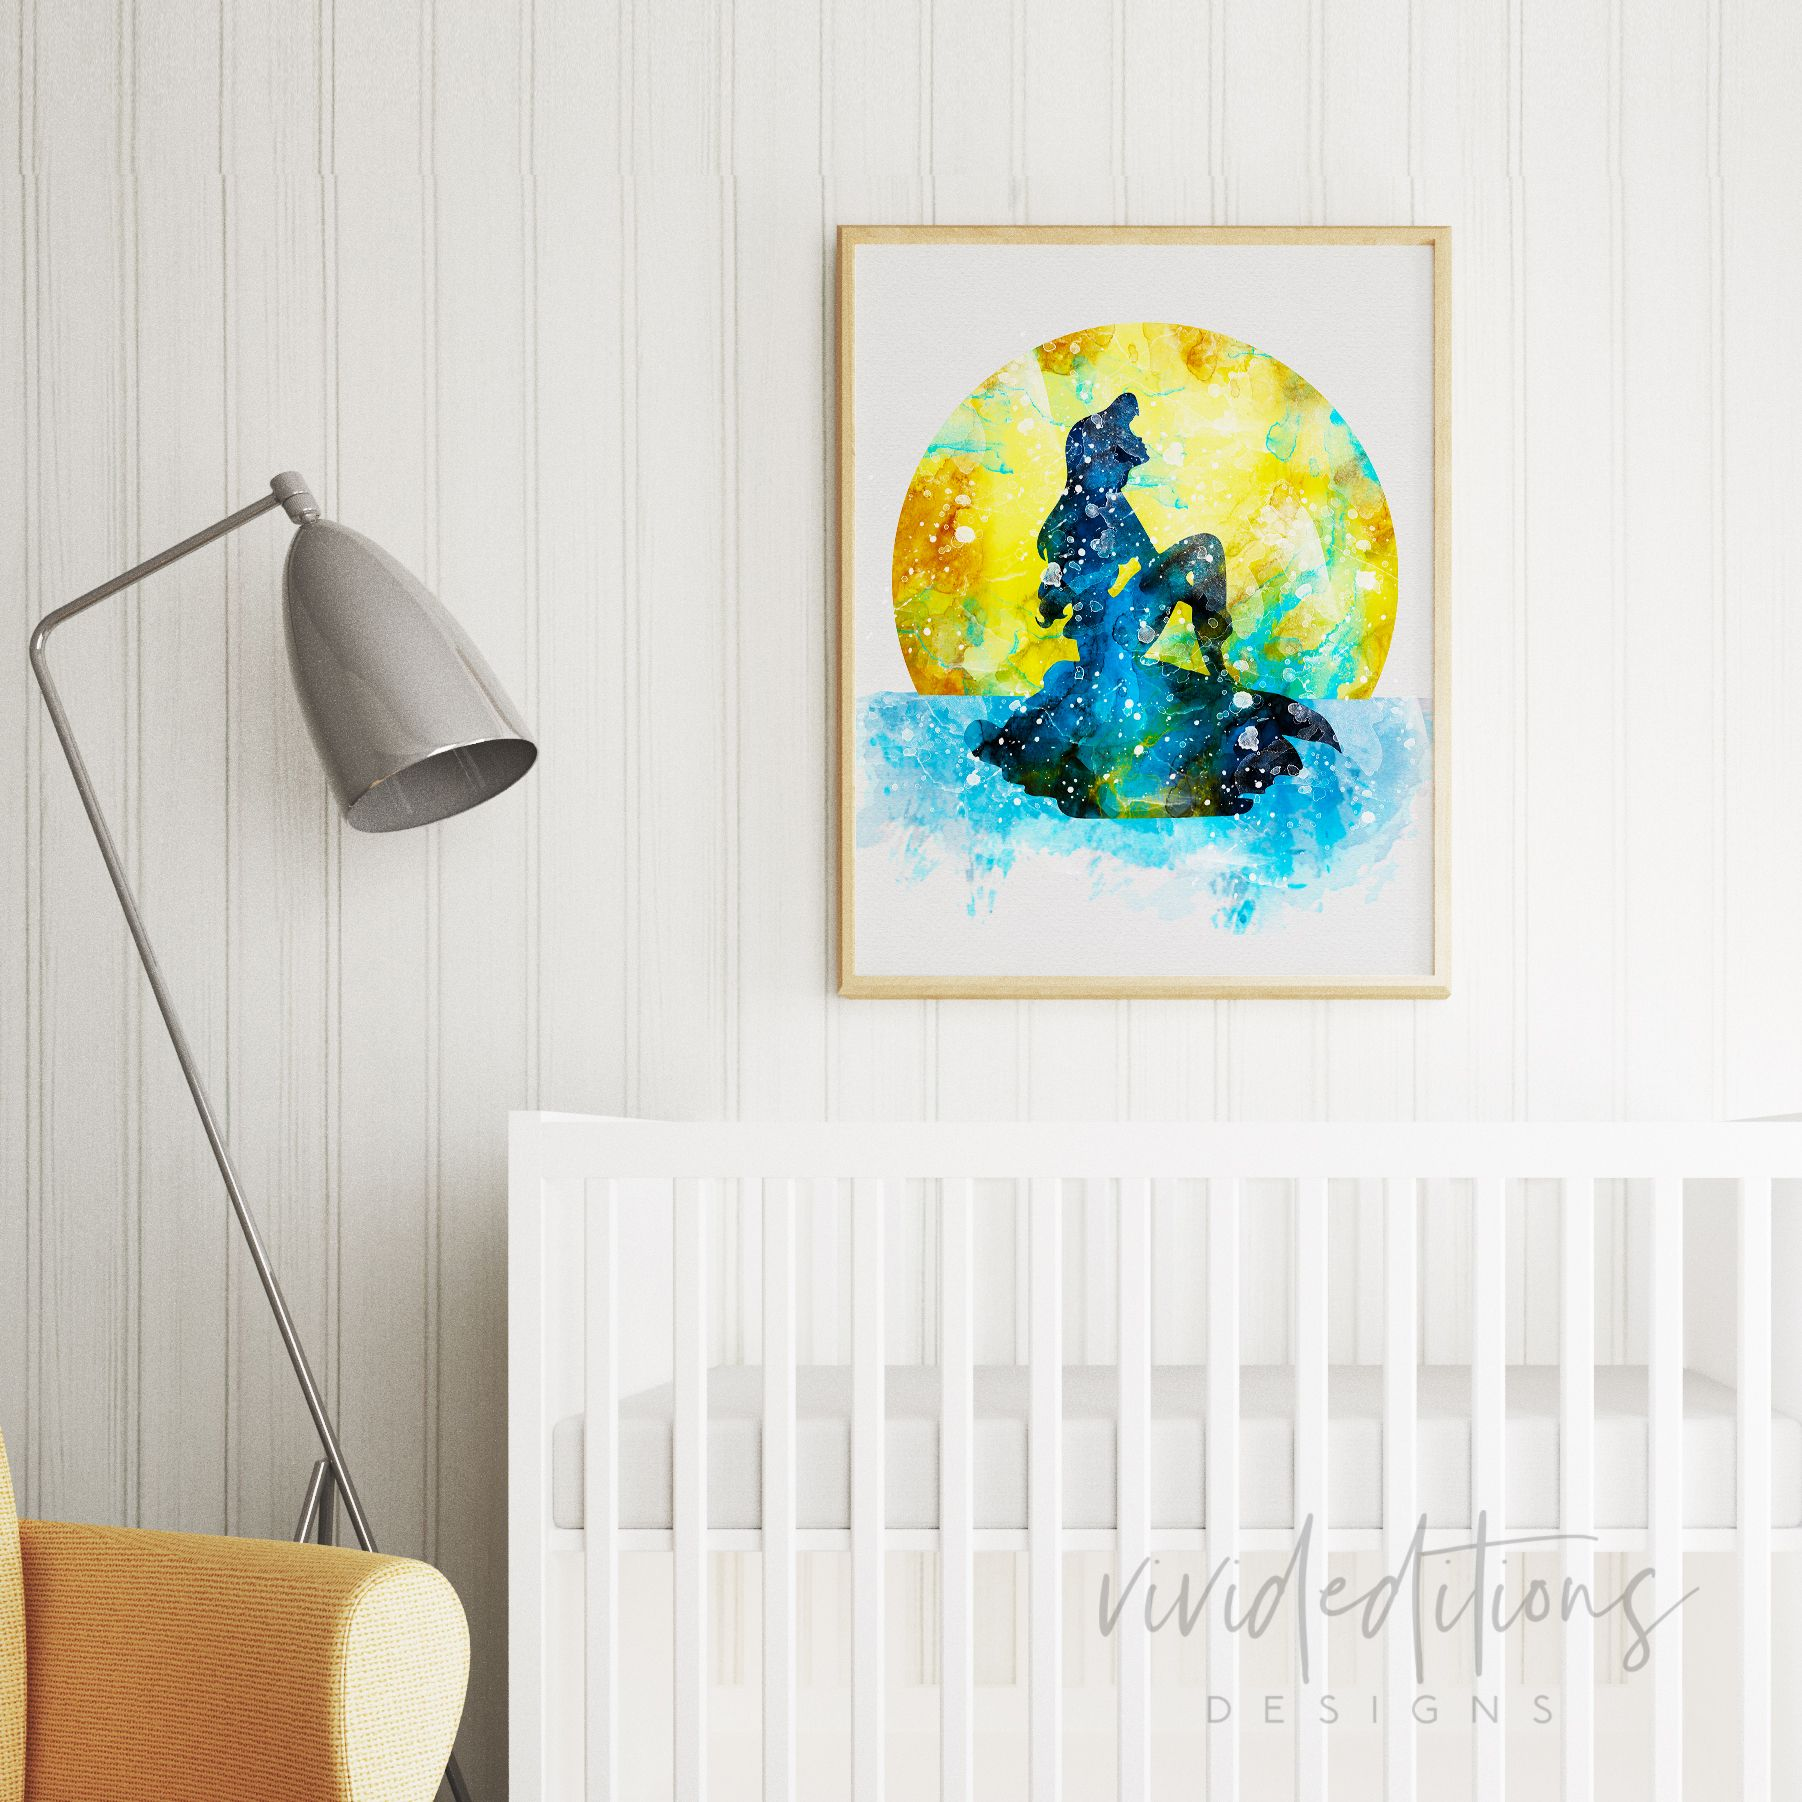 Amazing Watercolor Character Nursery Art Prints Browse From Over 1,000